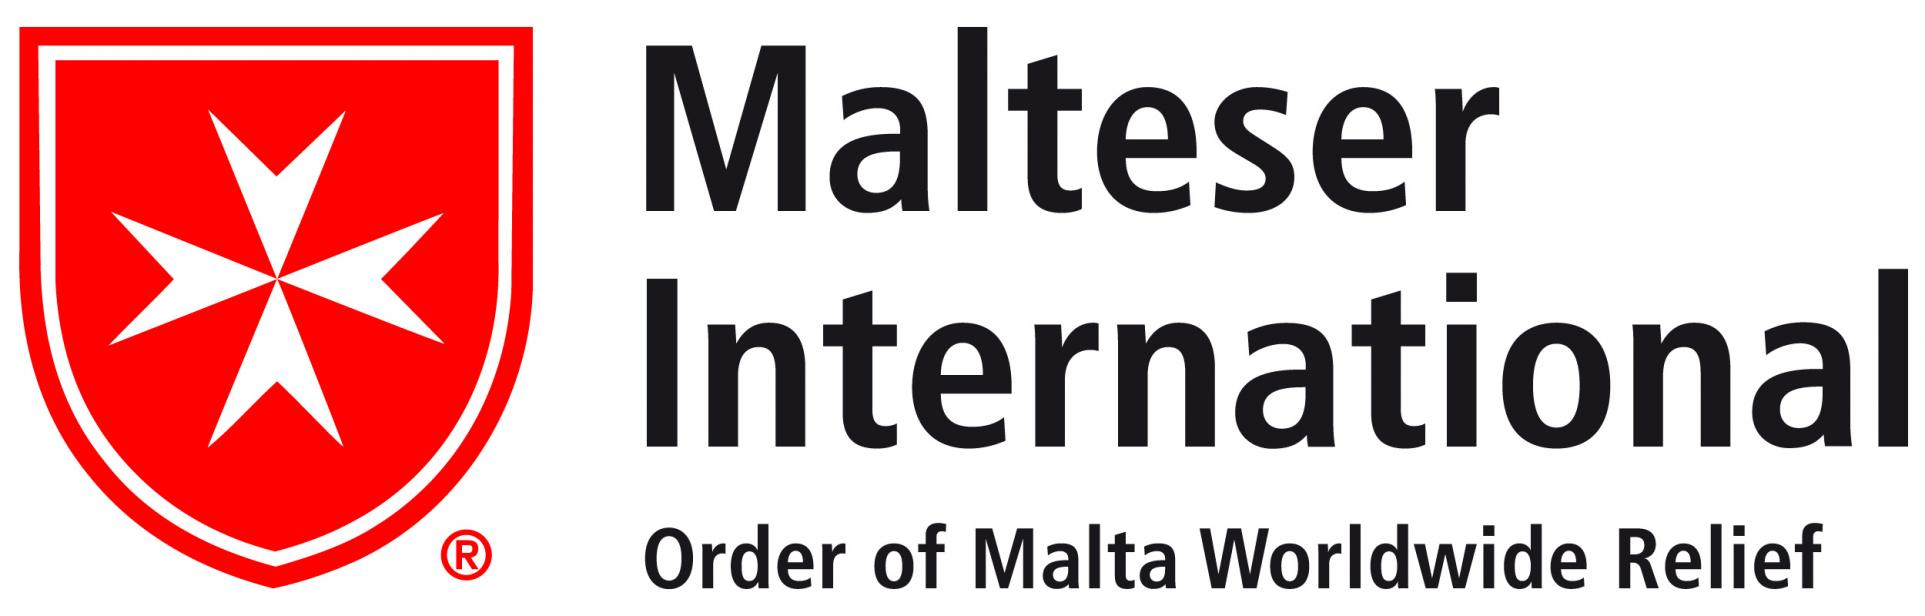 Malteser International Americas Logo